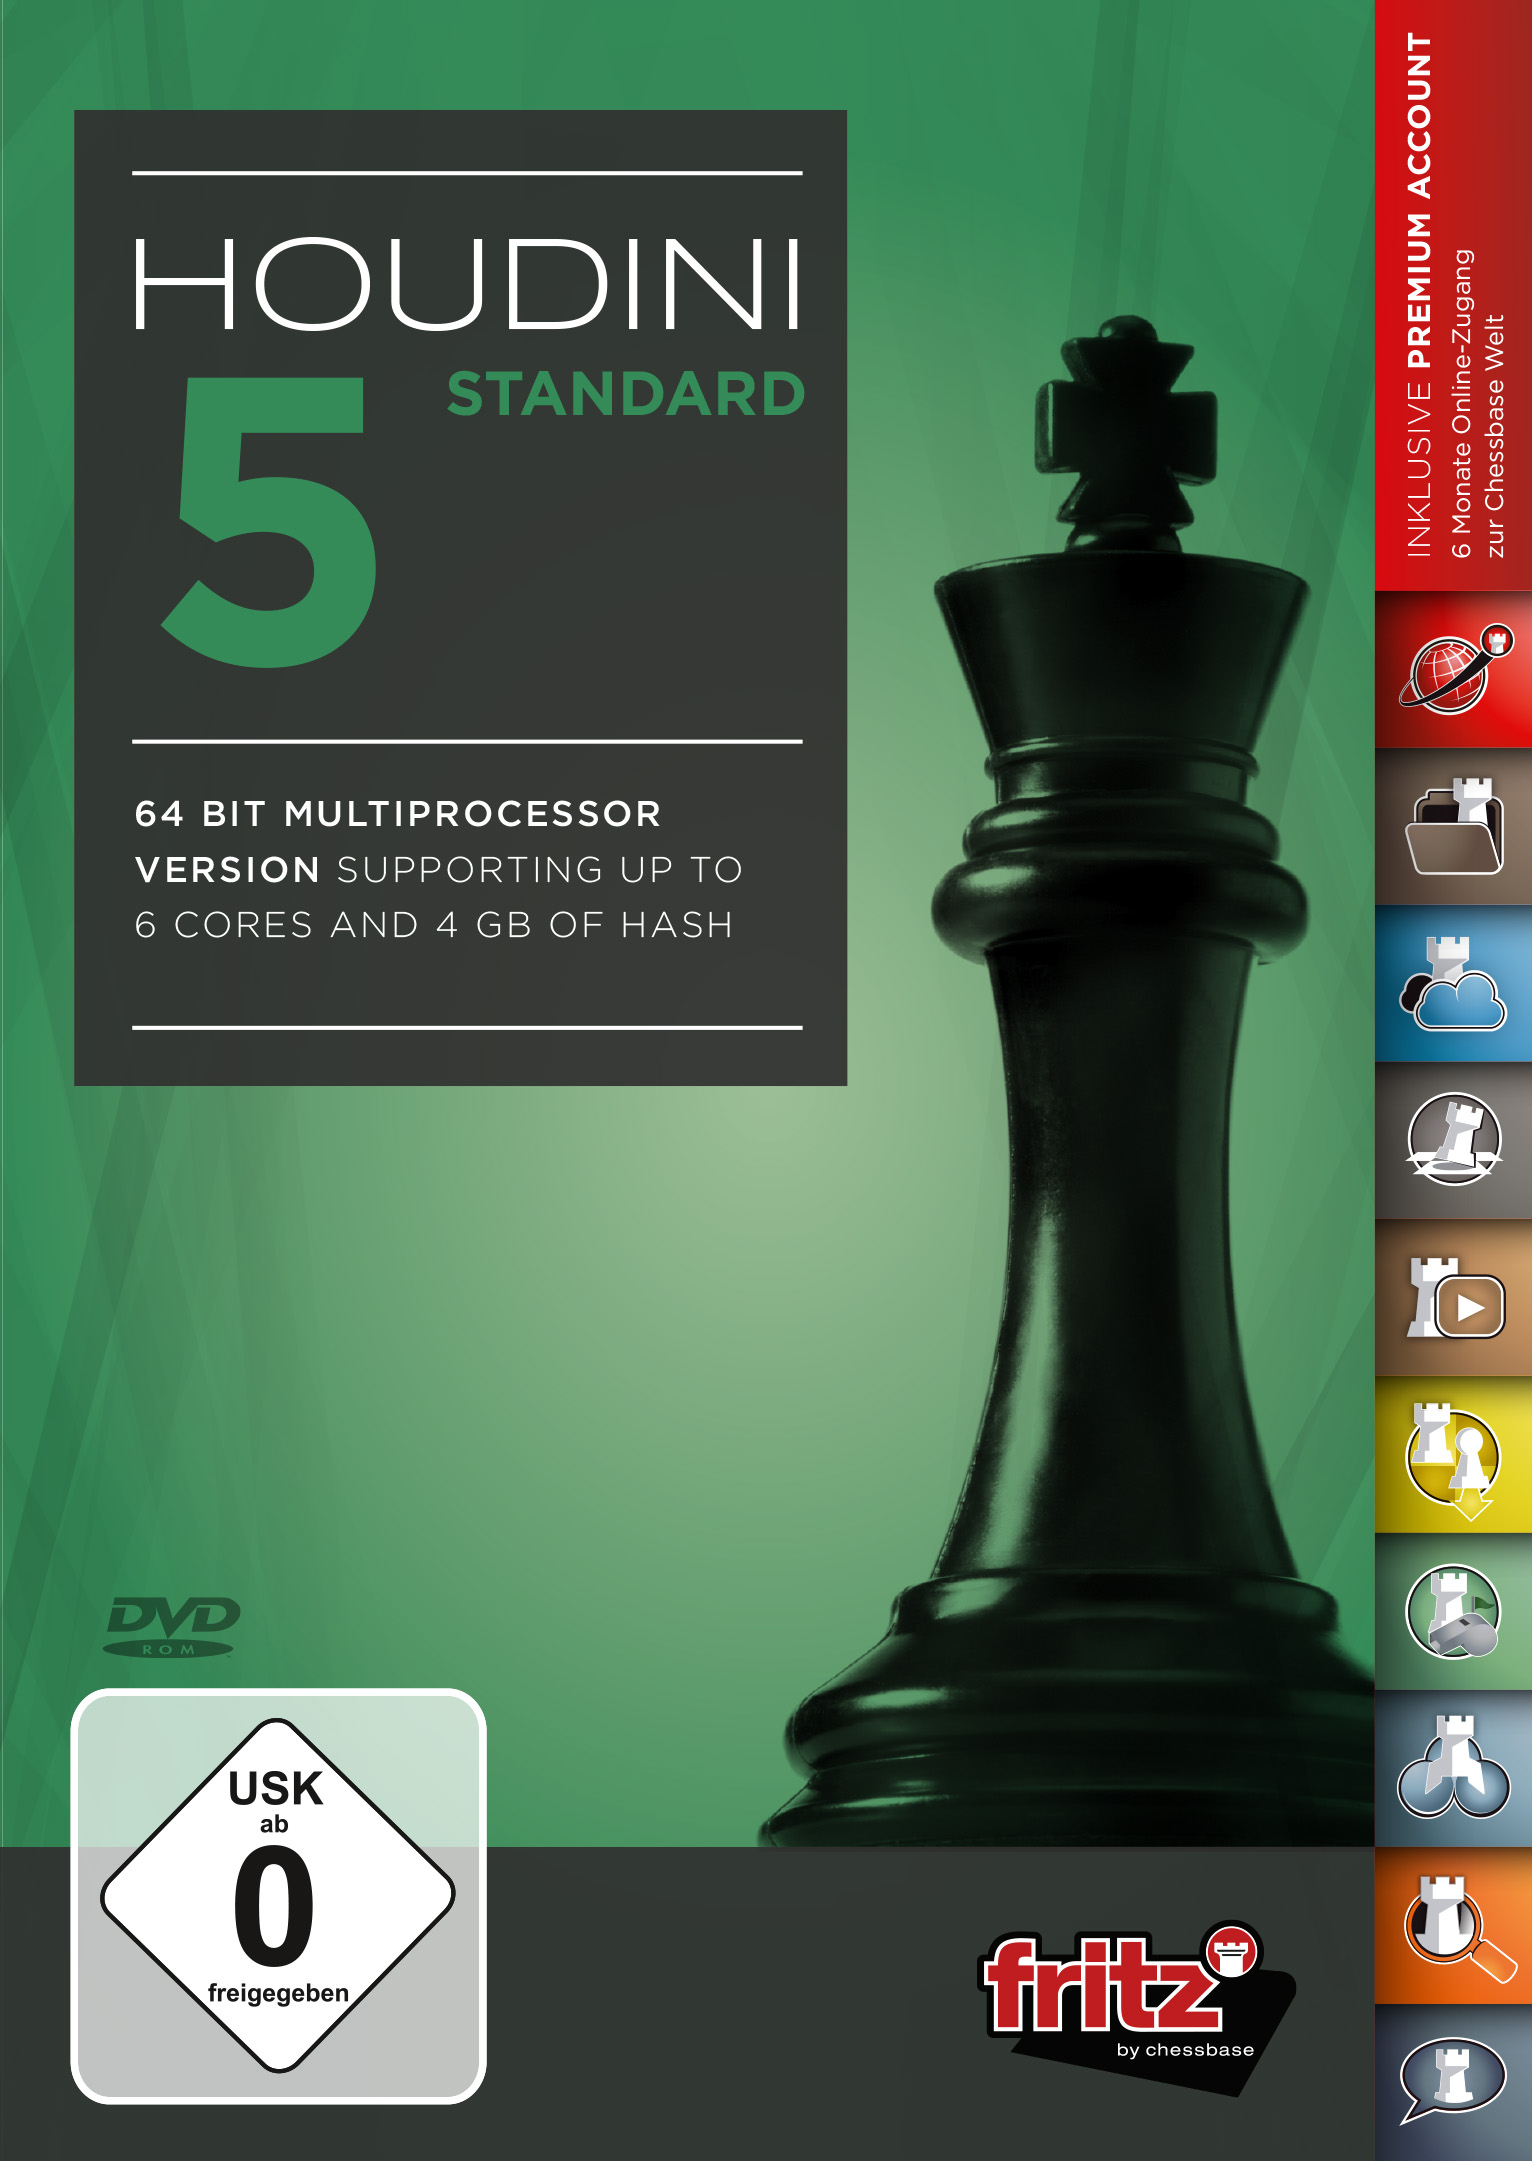 Houdini 5 Chess Playing Software Program STANDARD EDITION by ChessBase